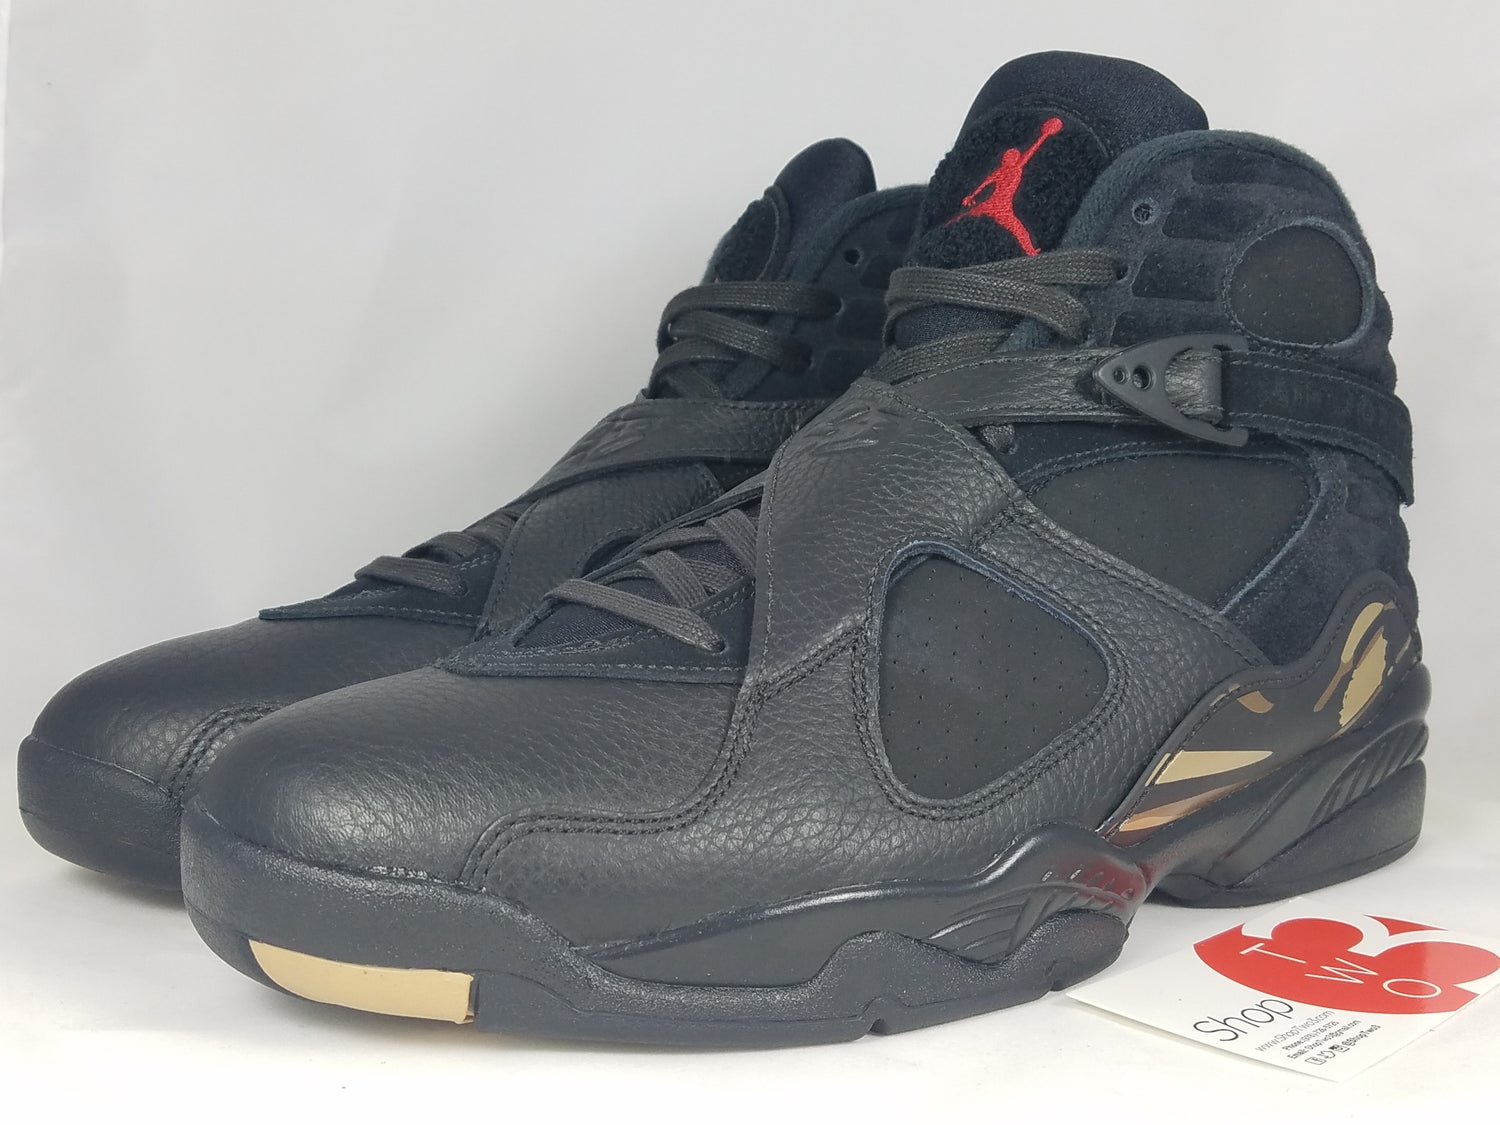 outlet store 71c73 83afa Image of Jordan 8 Retro OVO Black